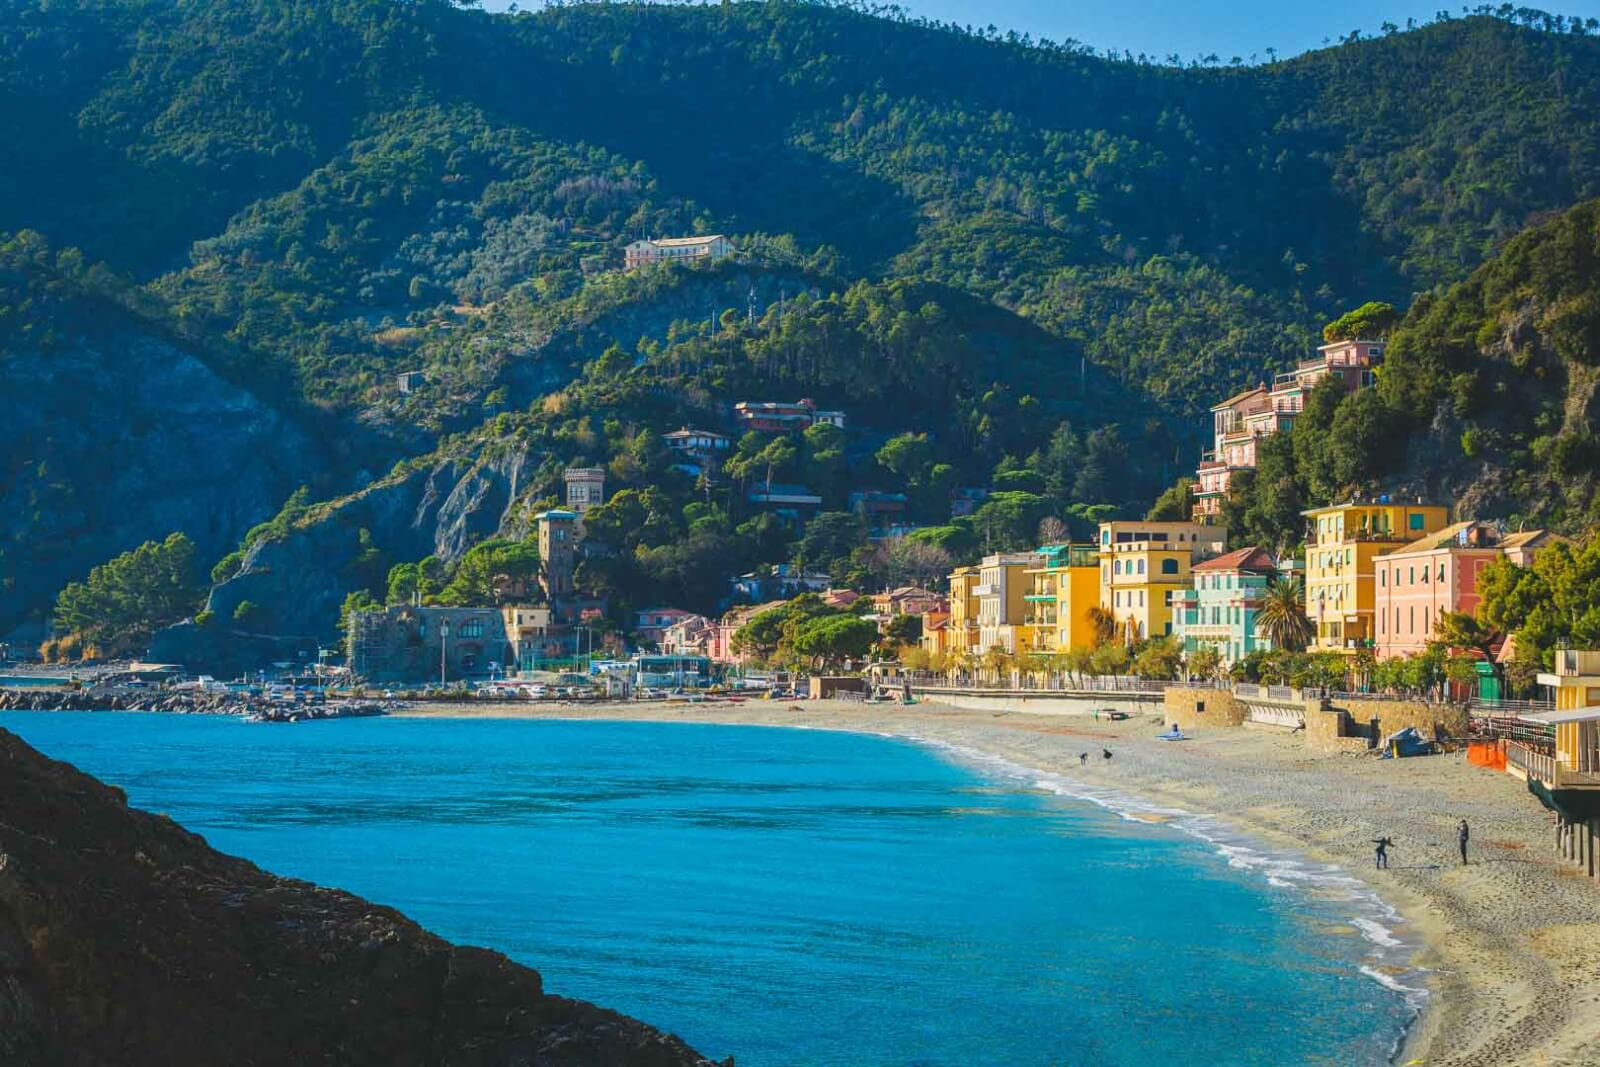 monterosso in cinque terre from kevmrc